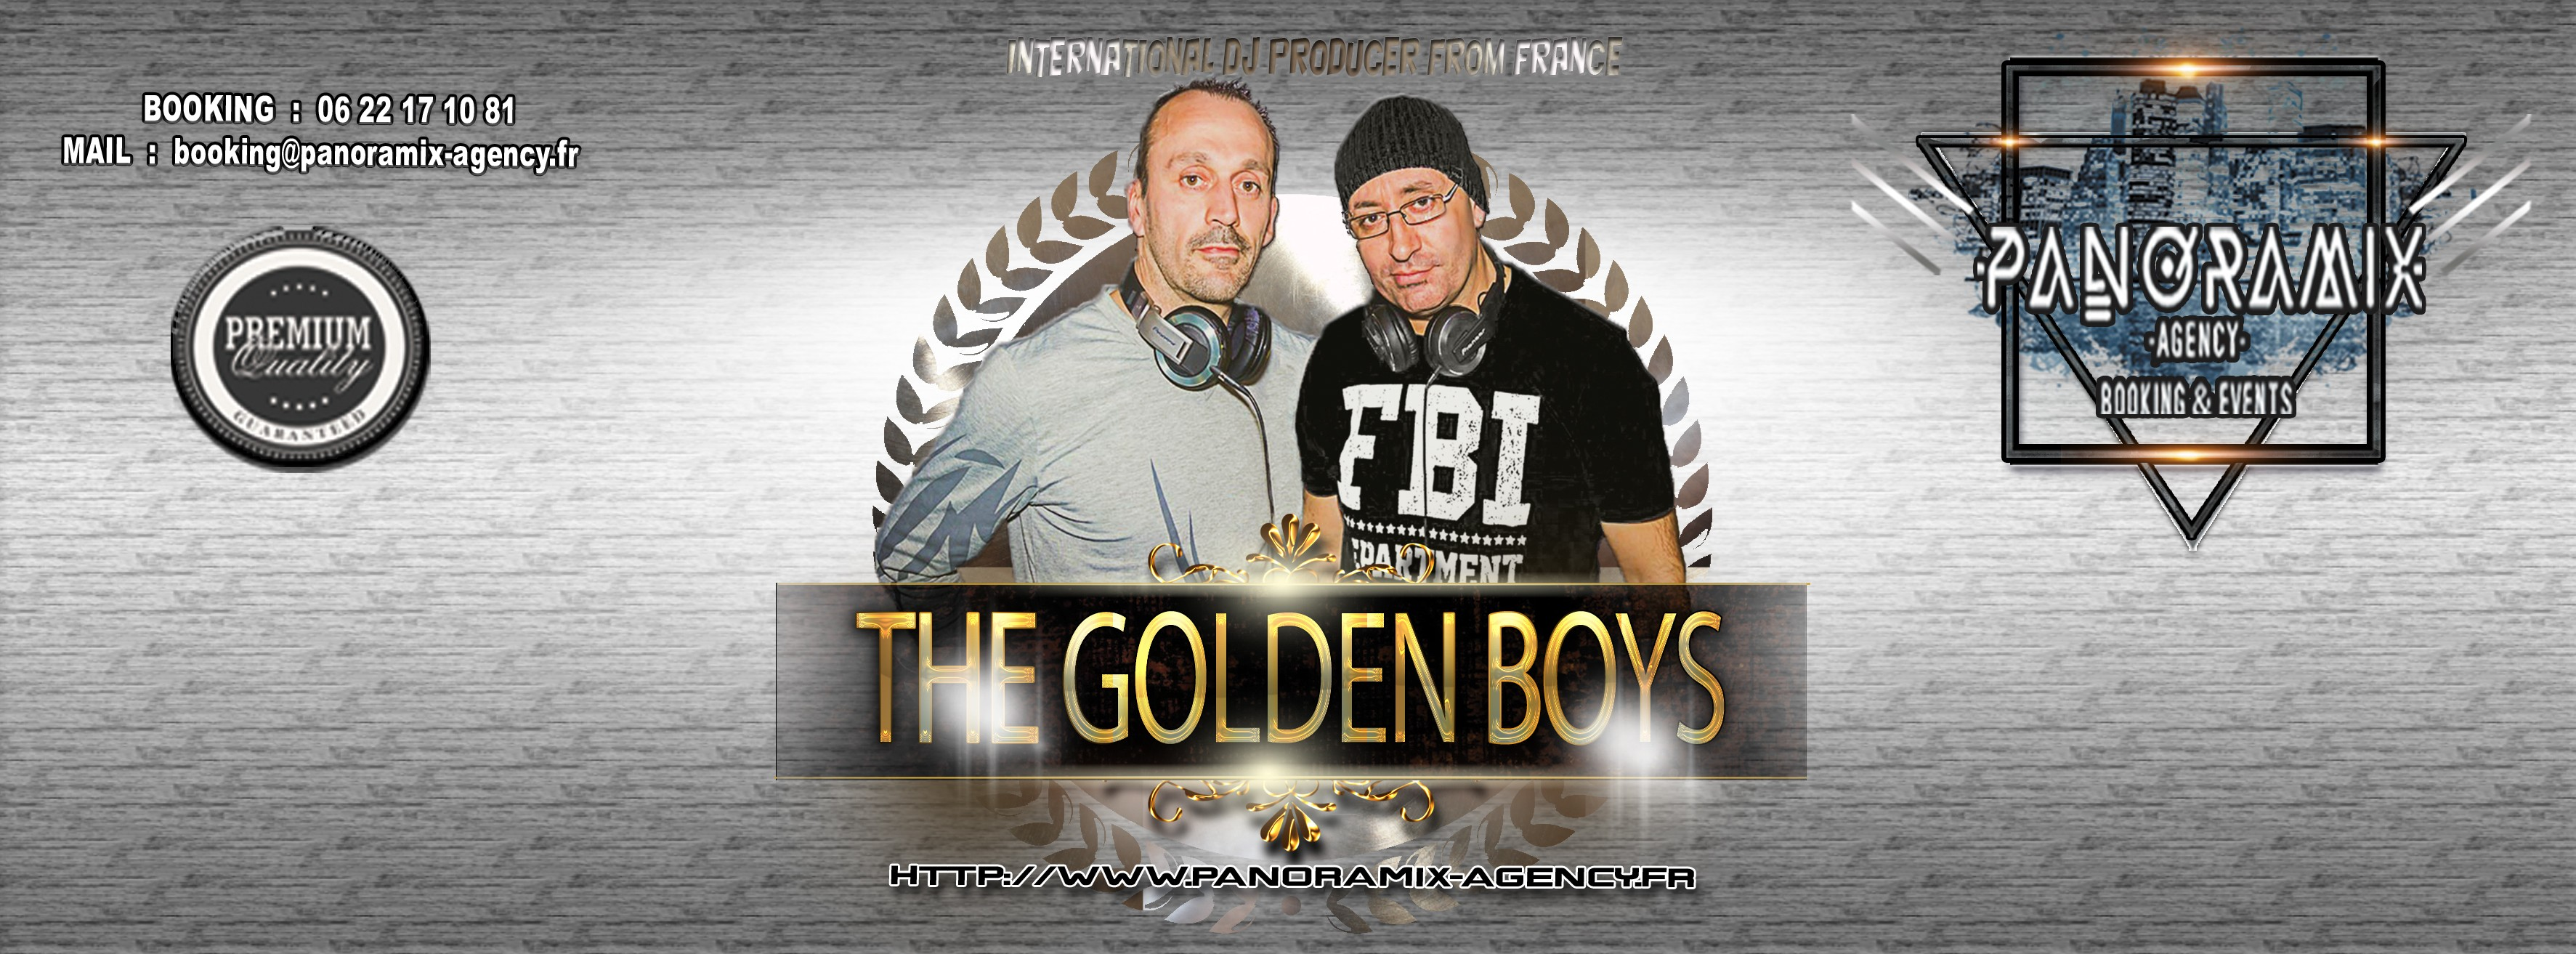 http://panoramix-radio-station.com/wp-content/uploads/2017/07/golden-boys-panoramix-agency-bannere-.jpg